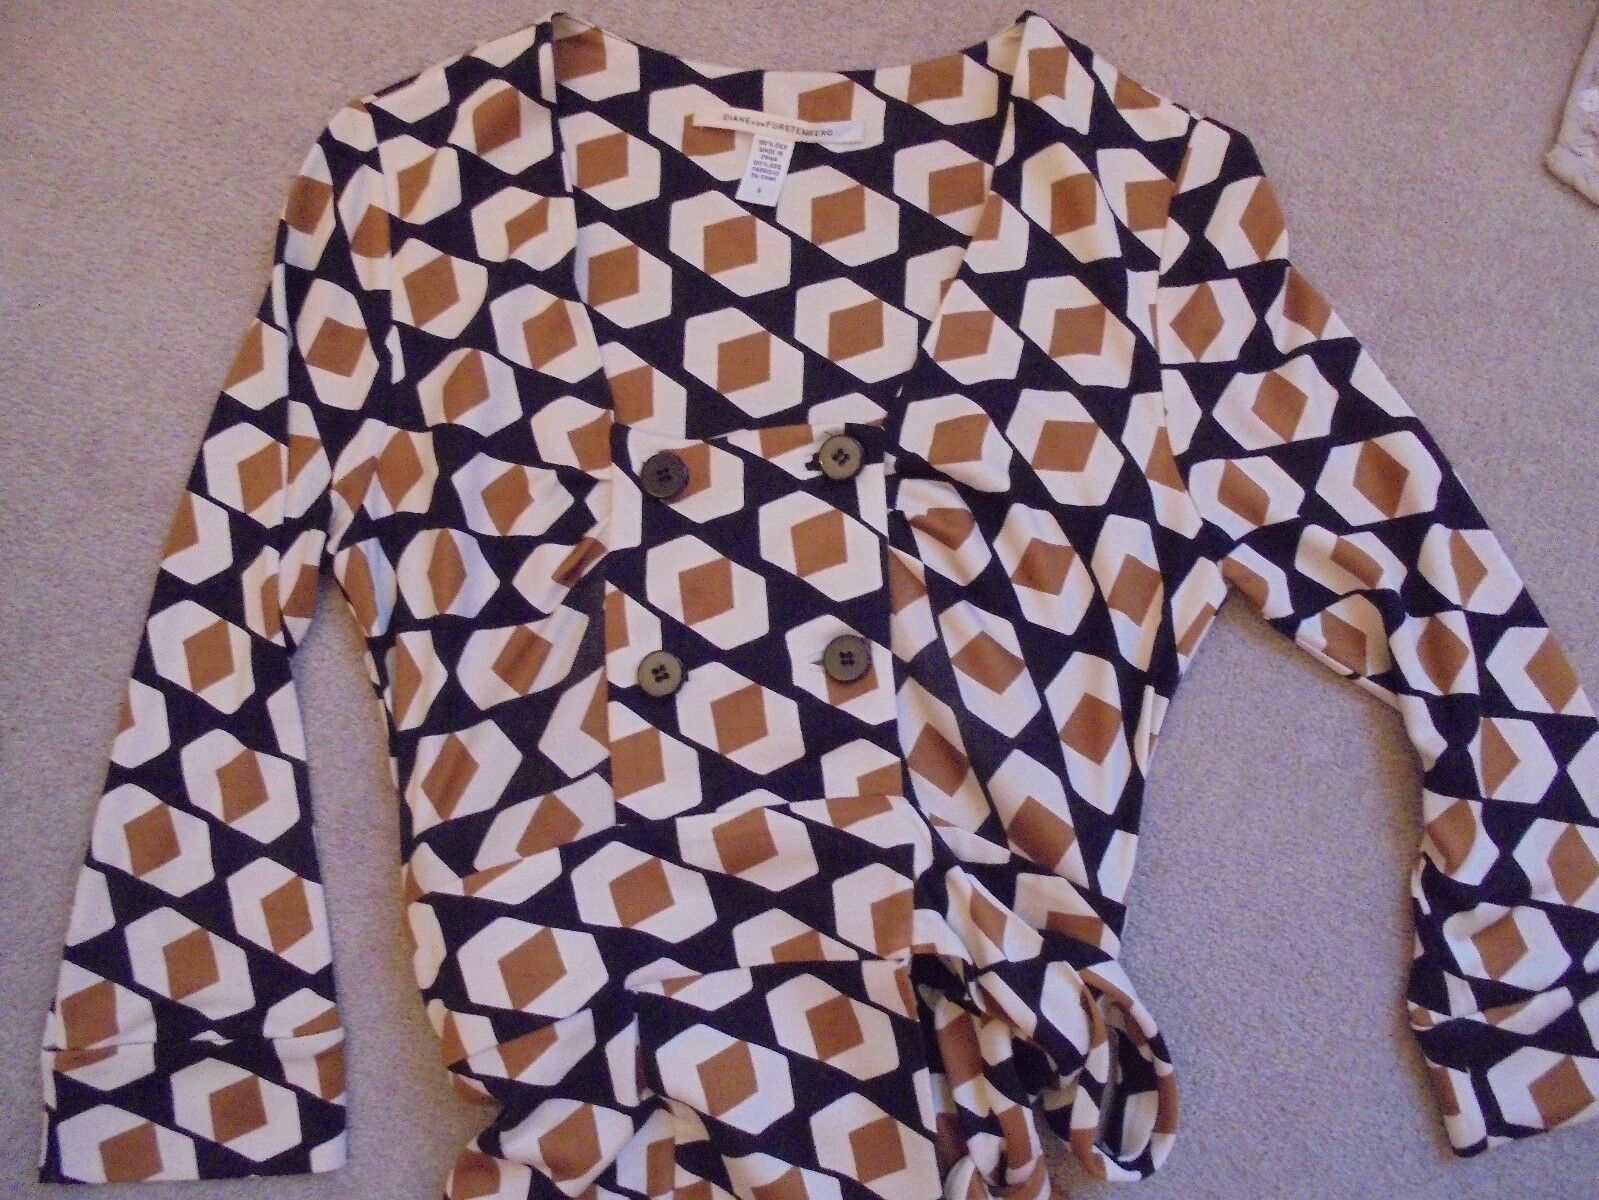 DIANE VON VON VON FURSTENBERG MOST STUNNING RETRO PRINT SILK WRAP DRESS 992ffa